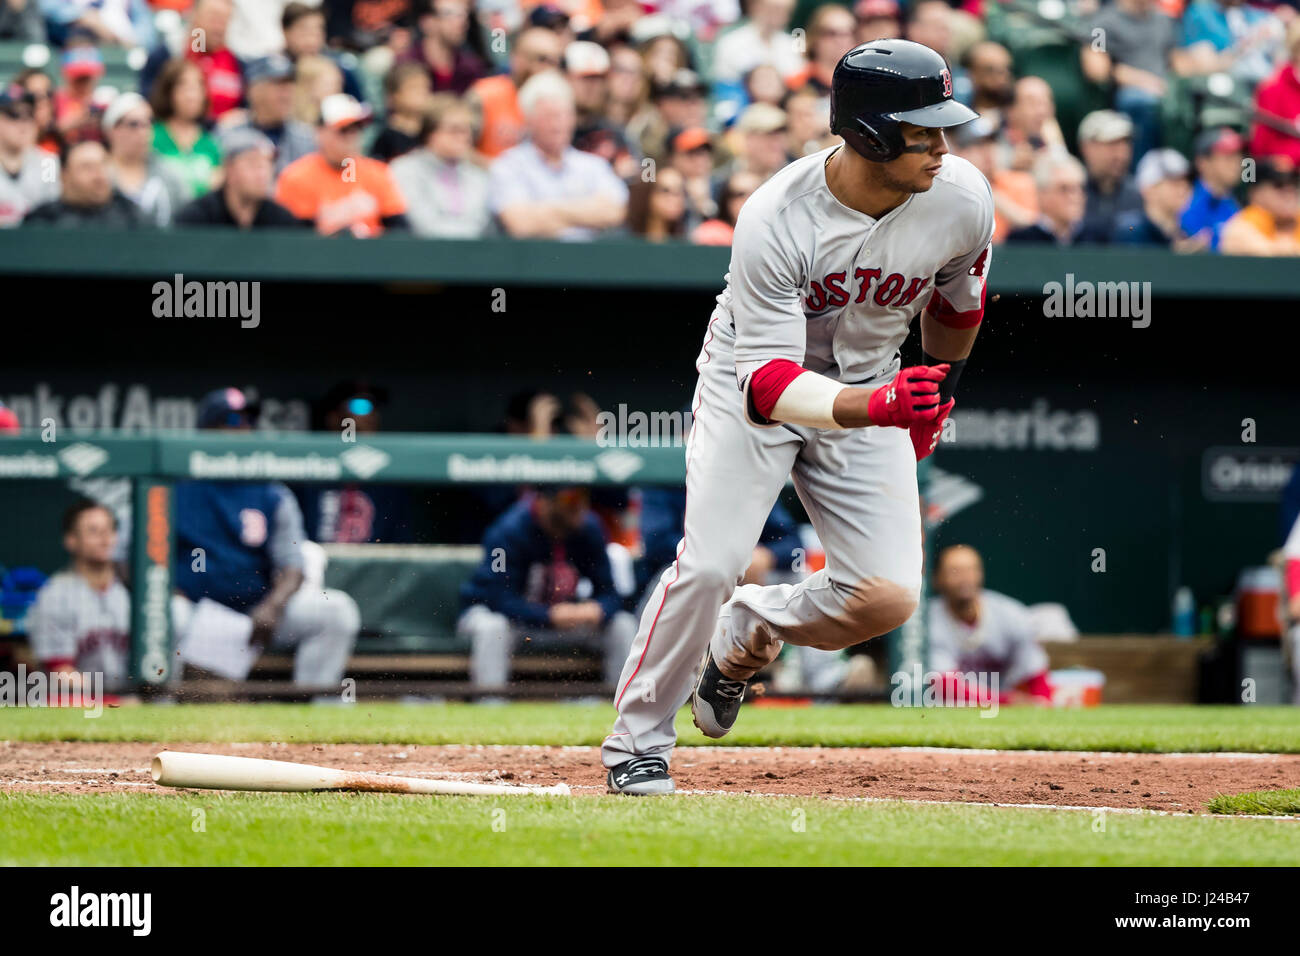 Baltimore, Maryland, USA. 23rd Apr, 2017. Boston Red Sox second ...